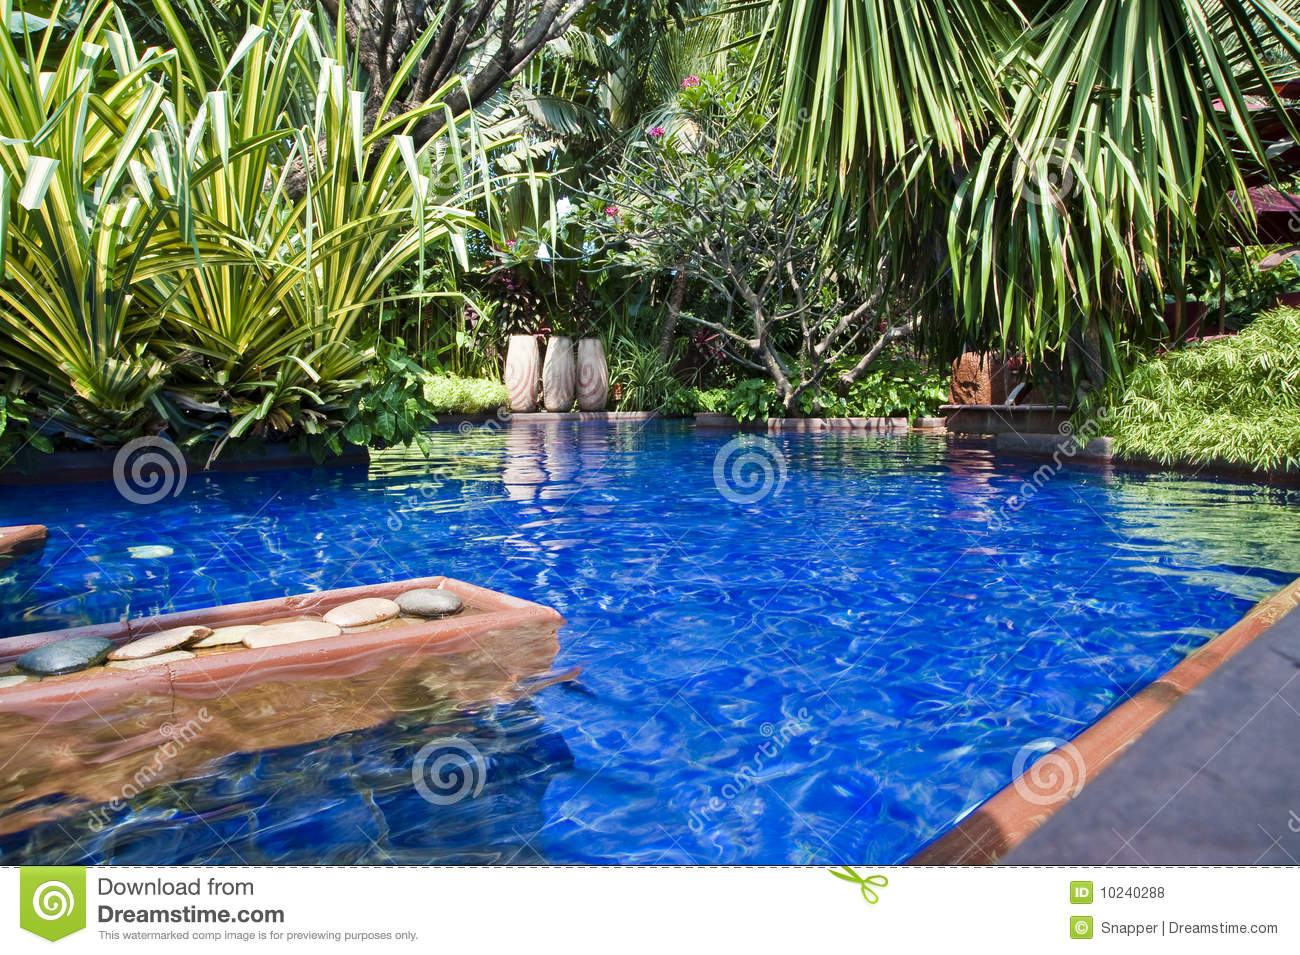 Tropical swimming pool stock photo. Image of azure, fountain ...